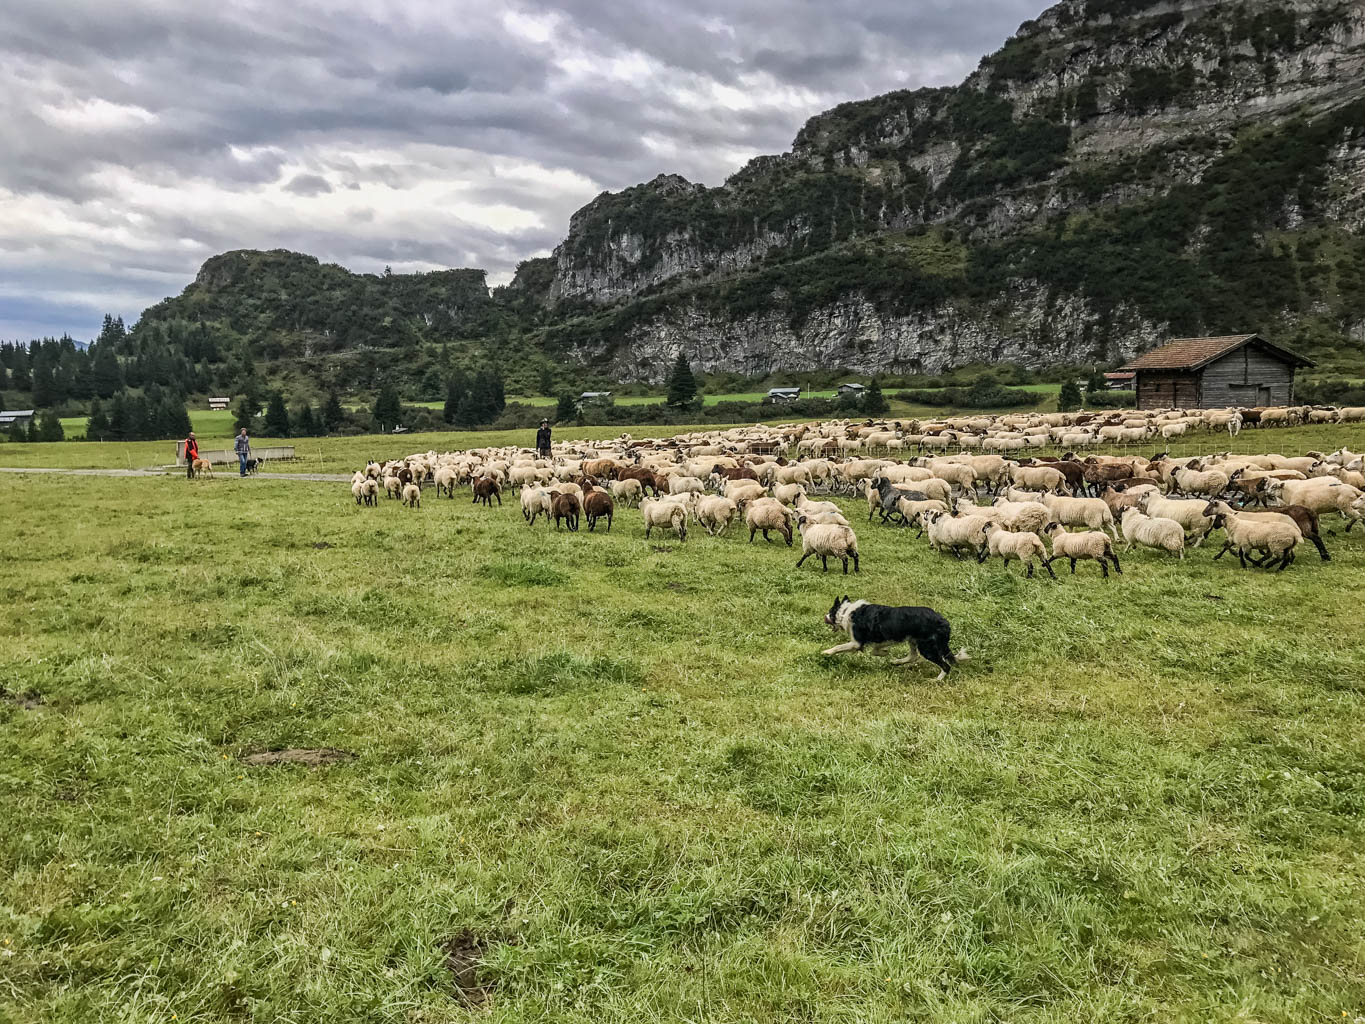 Sheep Herd Management 0173.jpg - European Wilderness Society  - CC NonCommercial-NoDerivates 4.0 International